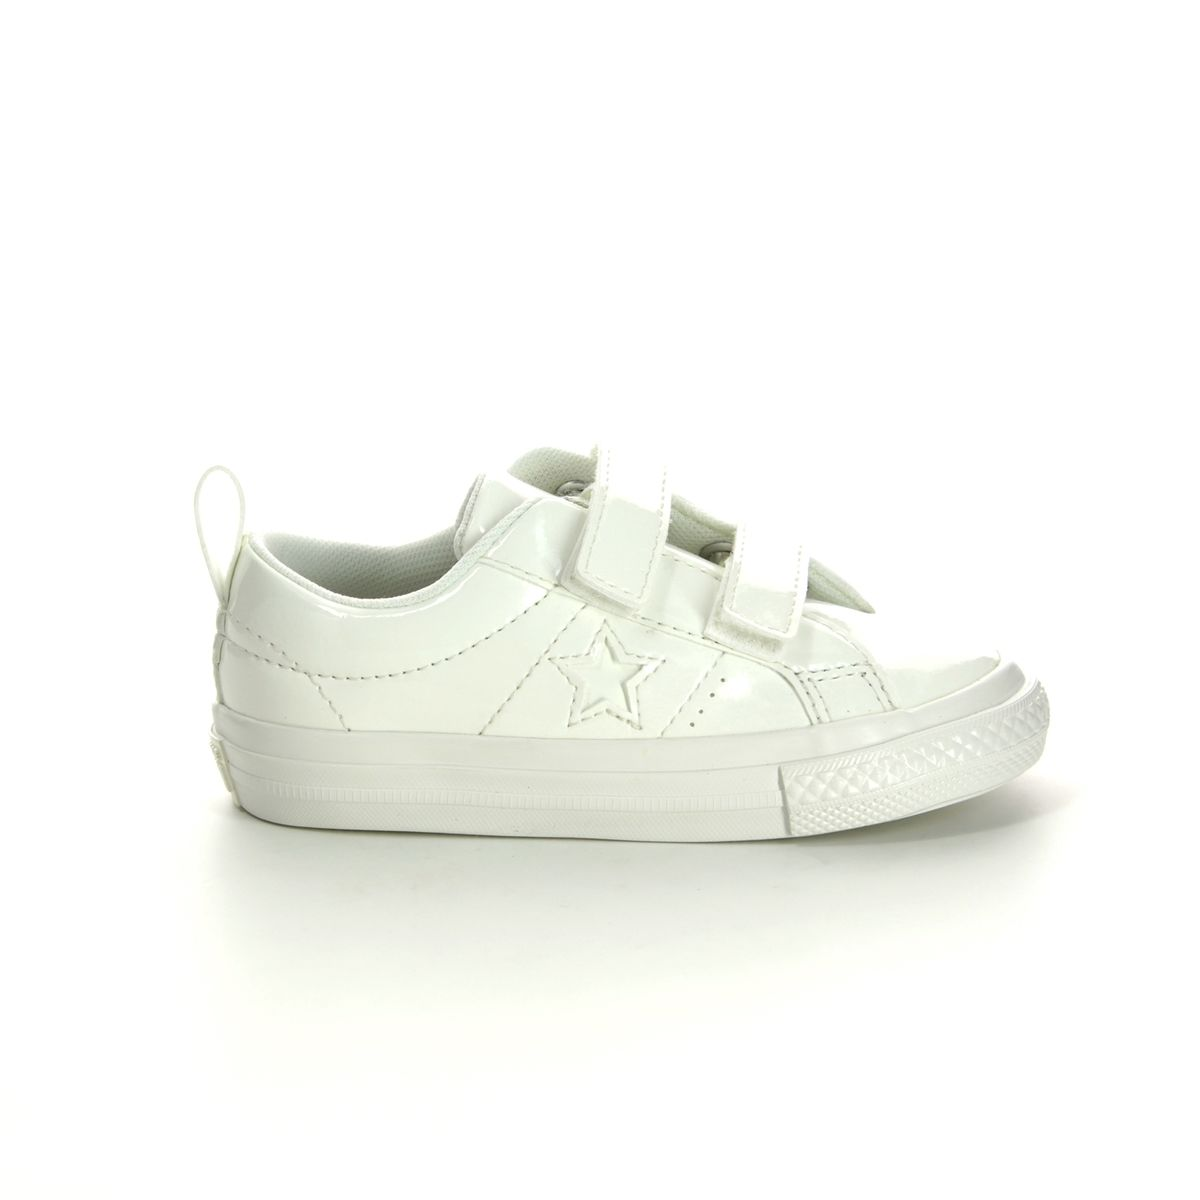 c2d04c50a9dd Converse Trainers - White - 762521C ONESTAR VEL IN